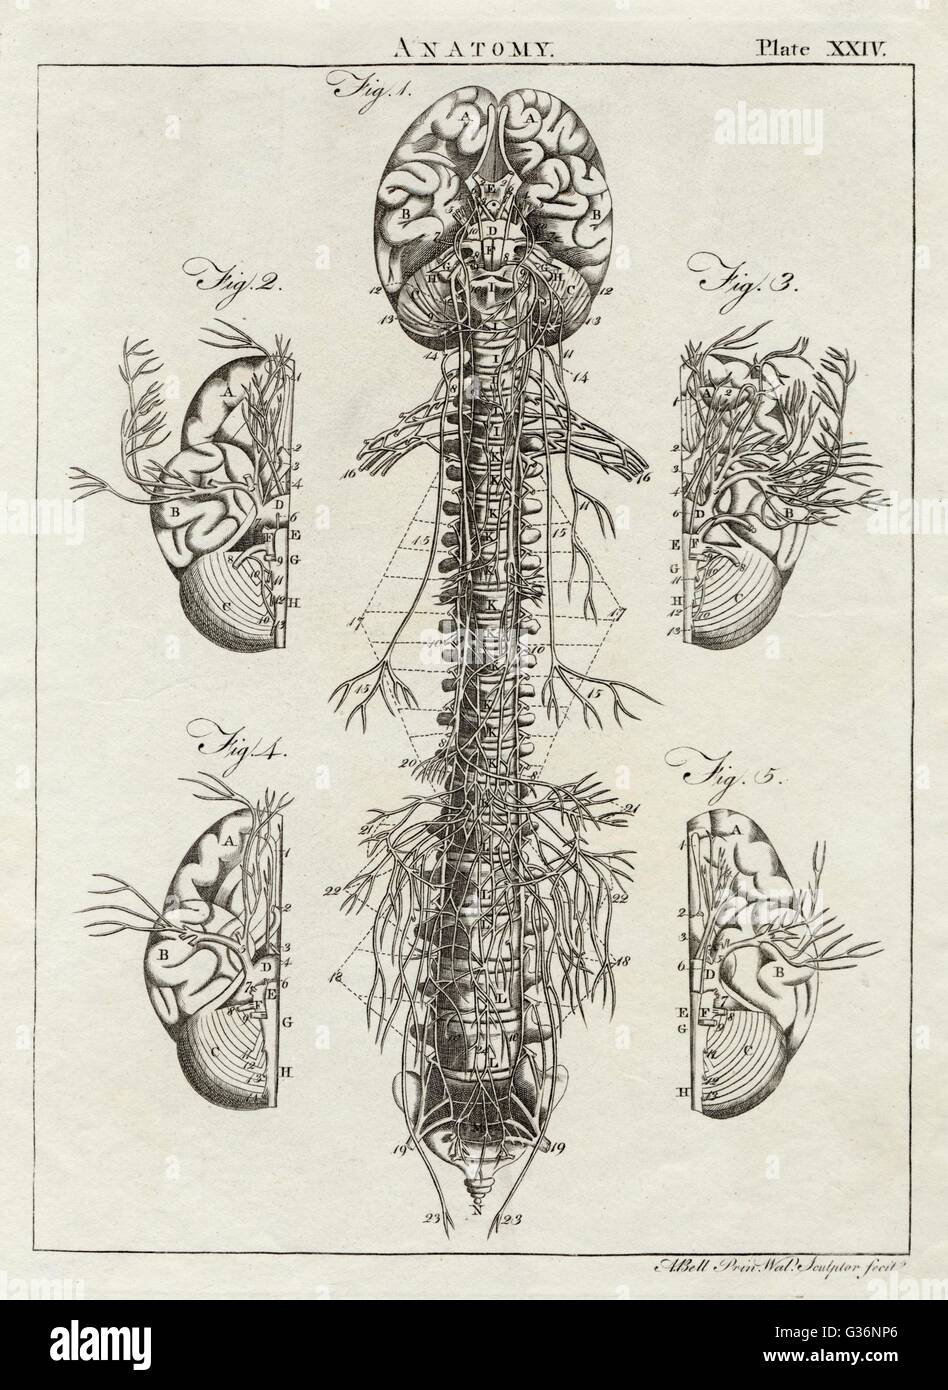 A diagram of the brain and spinal column, including the vertebrae.       Date: 1768 - Stock Image